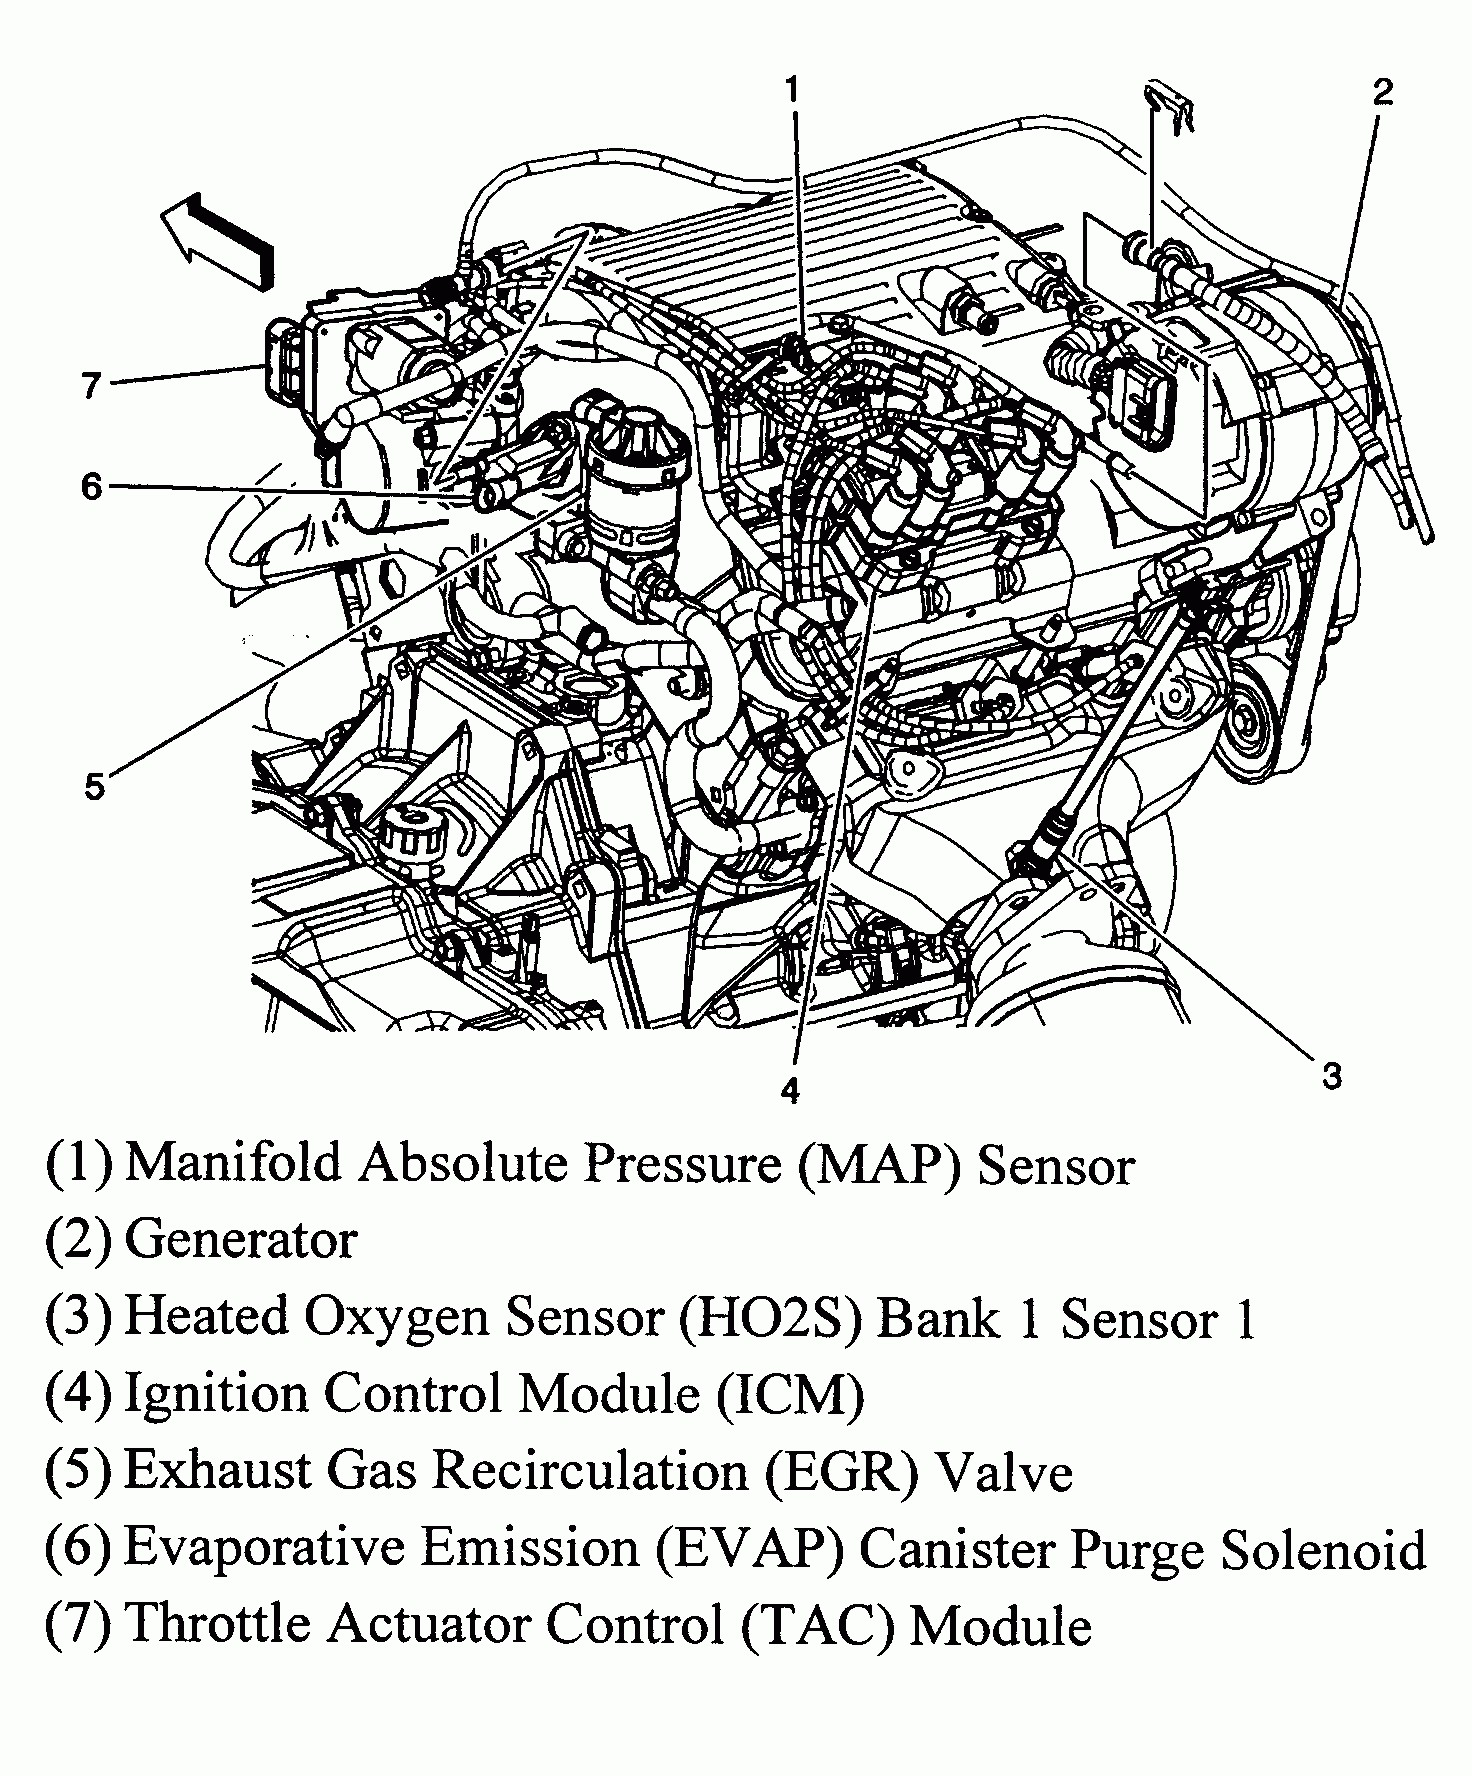 hight resolution of pontiac grand prix v6 3800 engine diagram wiring diagram database chevy 3800 engine diagram